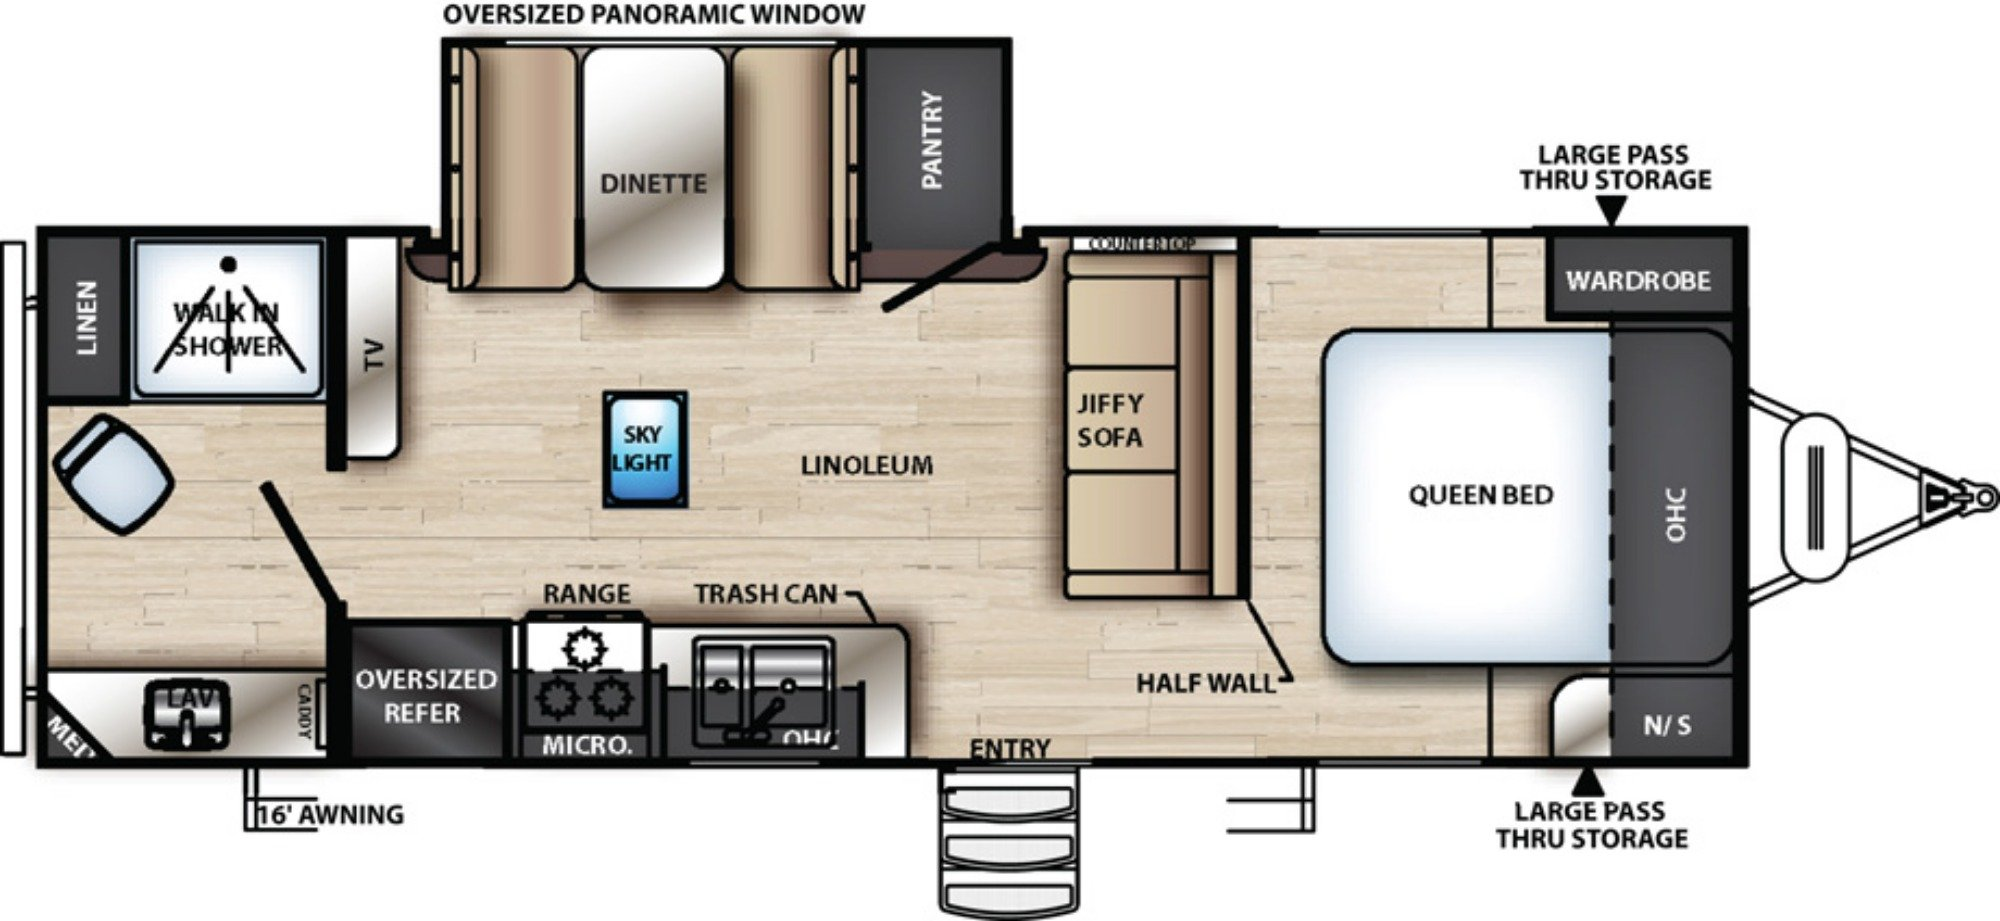 View Floor Plan for 2019 FOREST RIVER VIBE 22RB